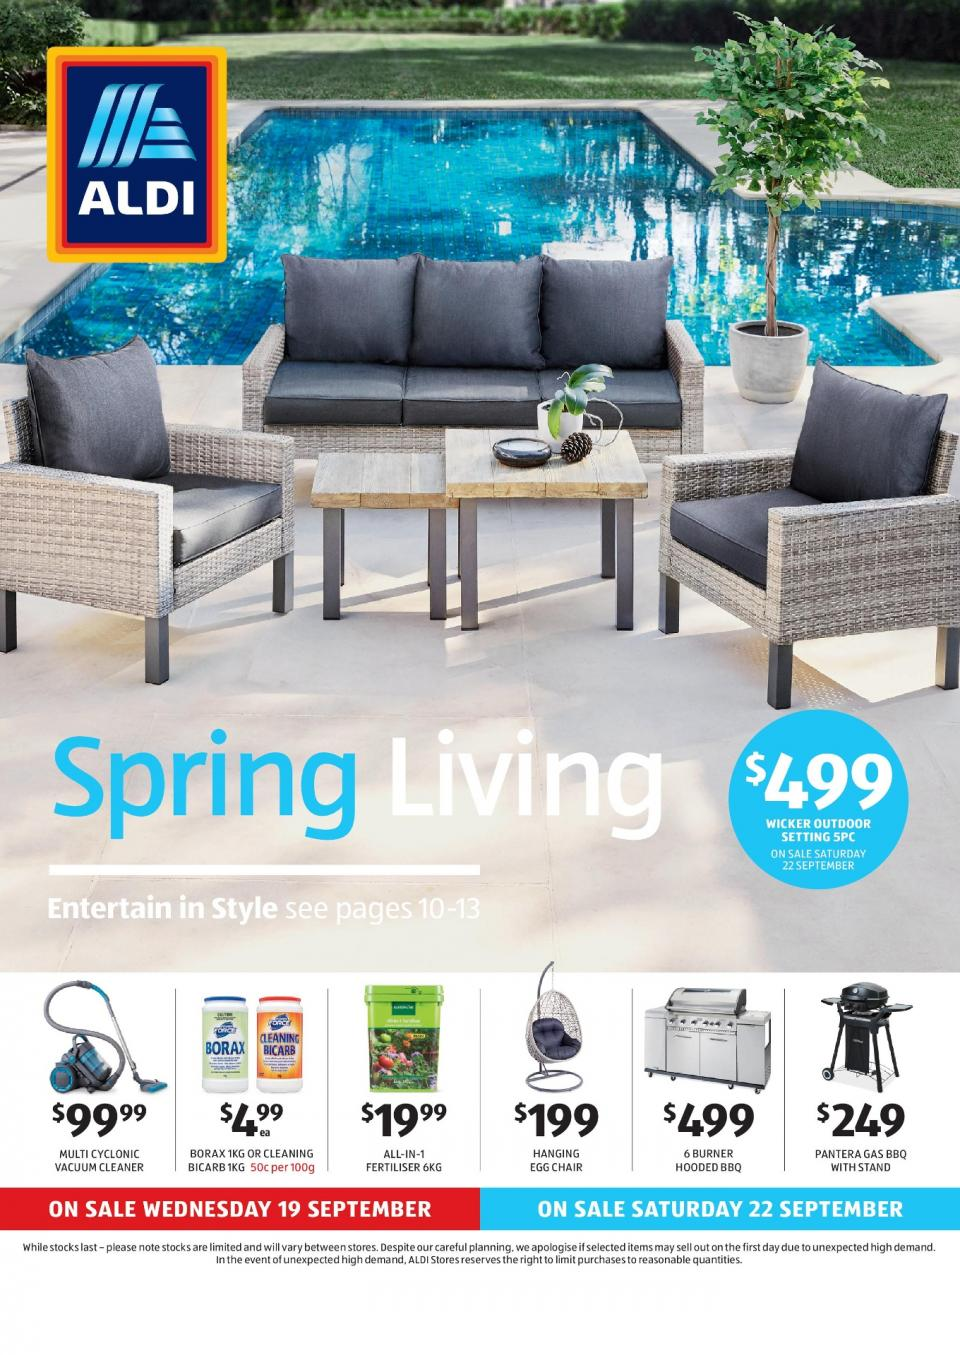 aldi special buys week 38 2018. Black Bedroom Furniture Sets. Home Design Ideas